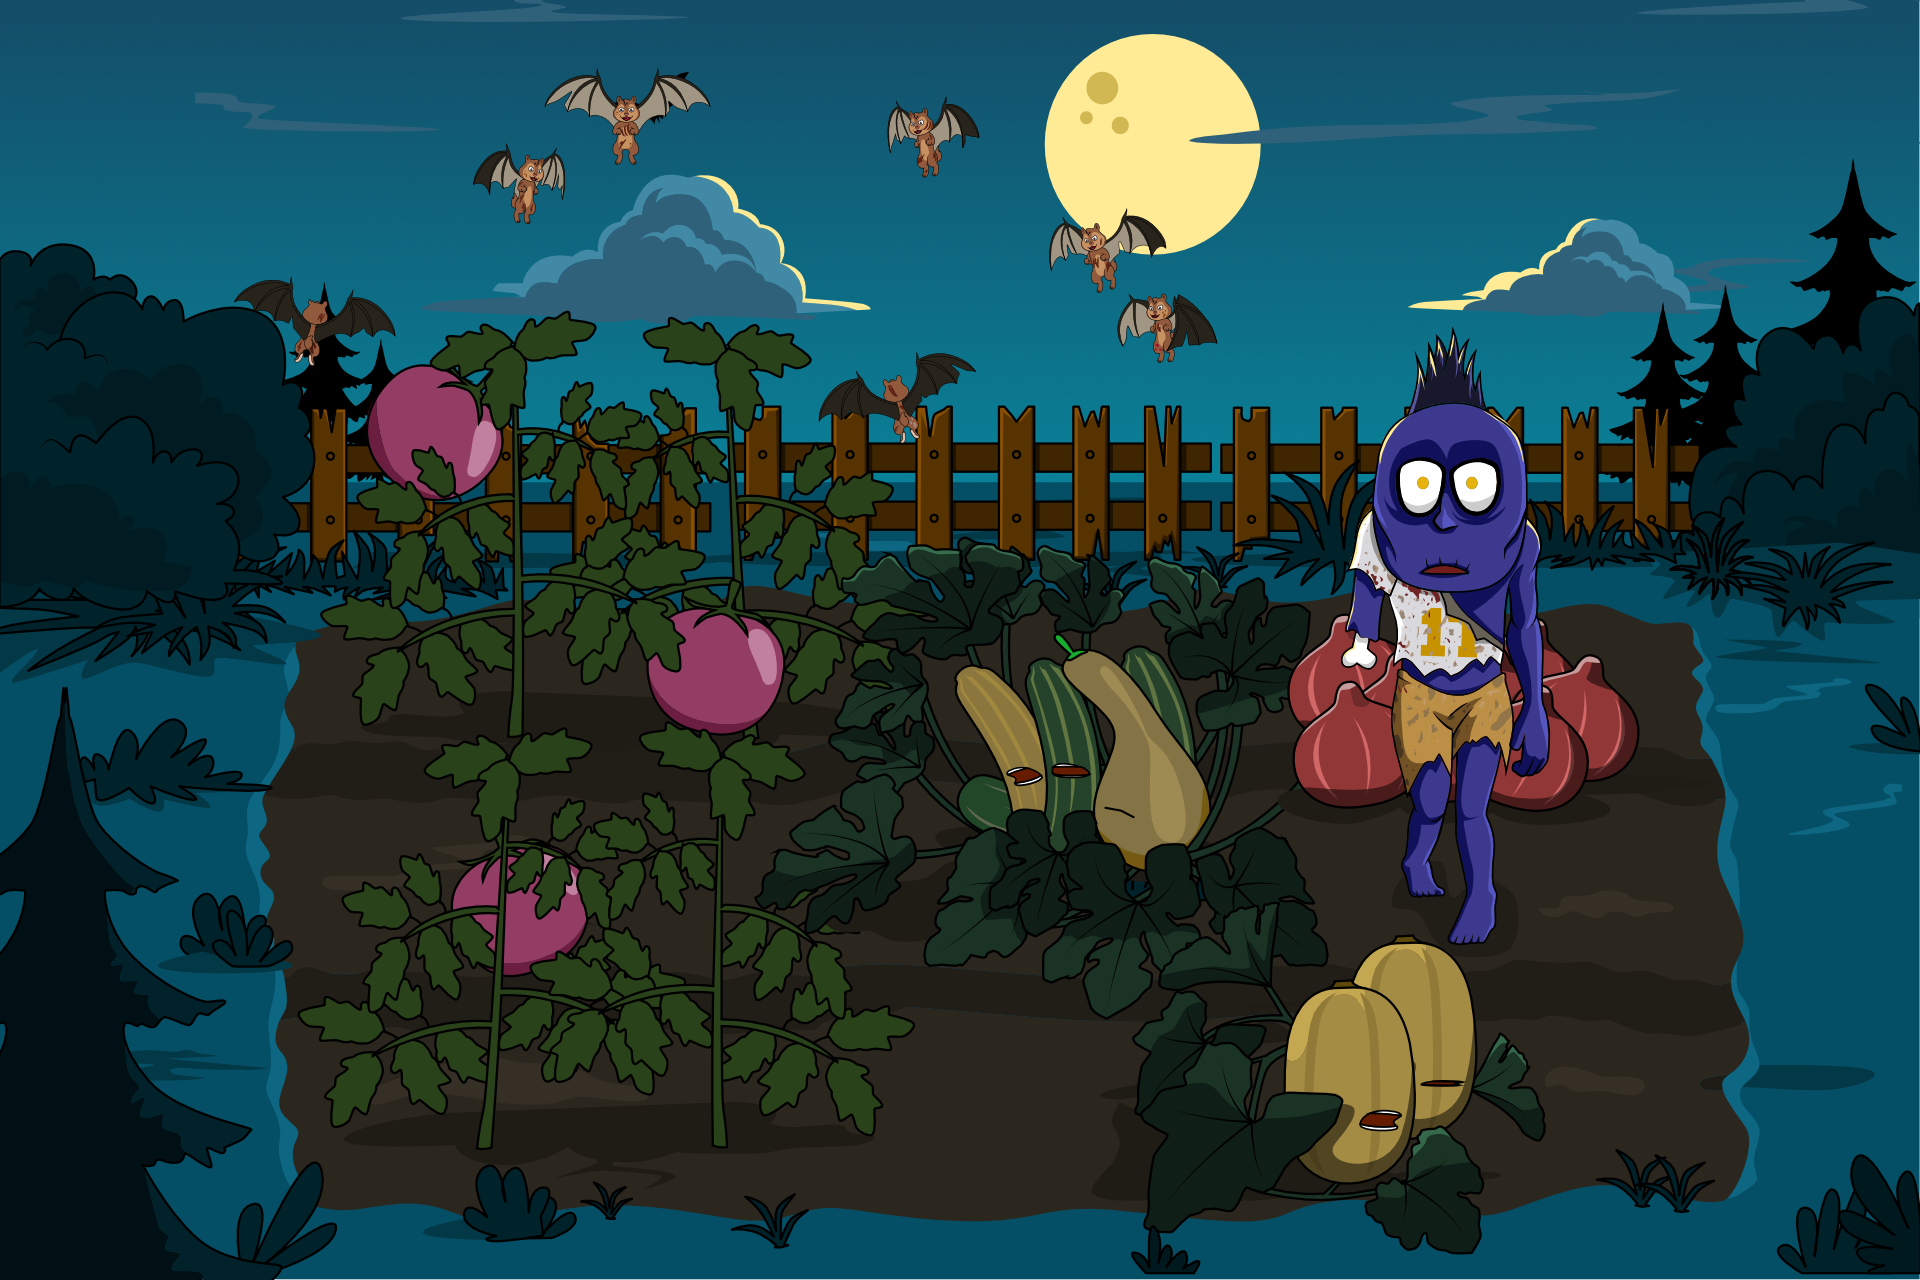 Okl'n the zombie in his failing garden surrounded by vampire bat, chipmunk hybrids